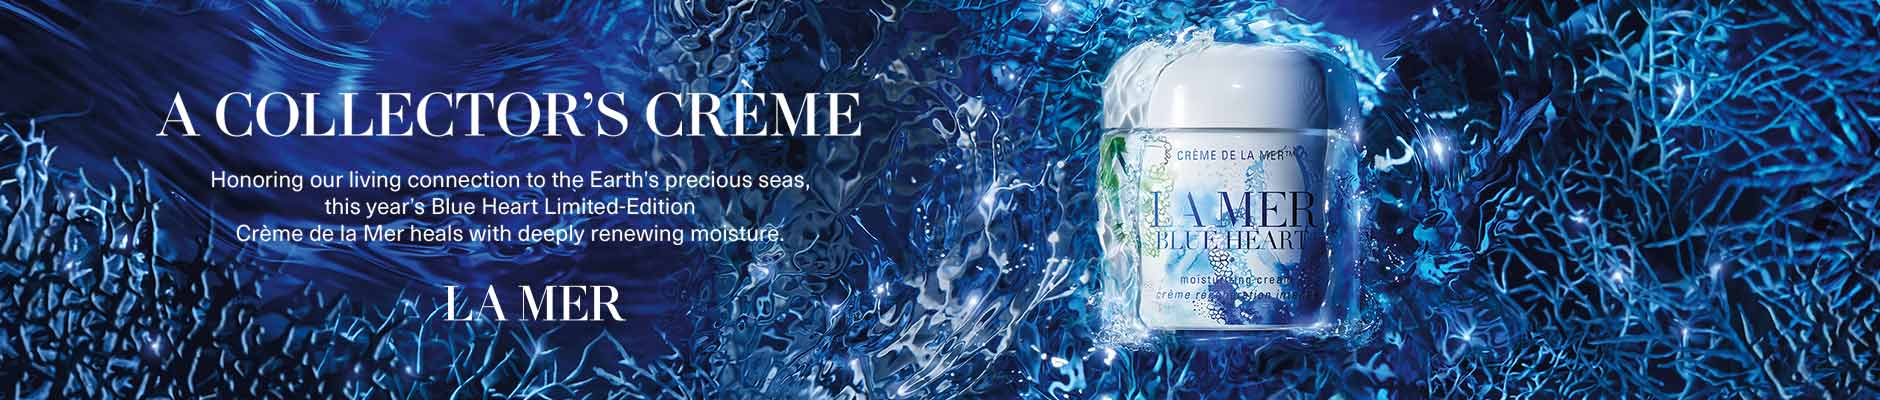 A collector's creme - honoring our living connection to the earth's precious seas, this year's Blue Heart Limited Edition creme de la mer heals with deeply renewing moisture - La Mer